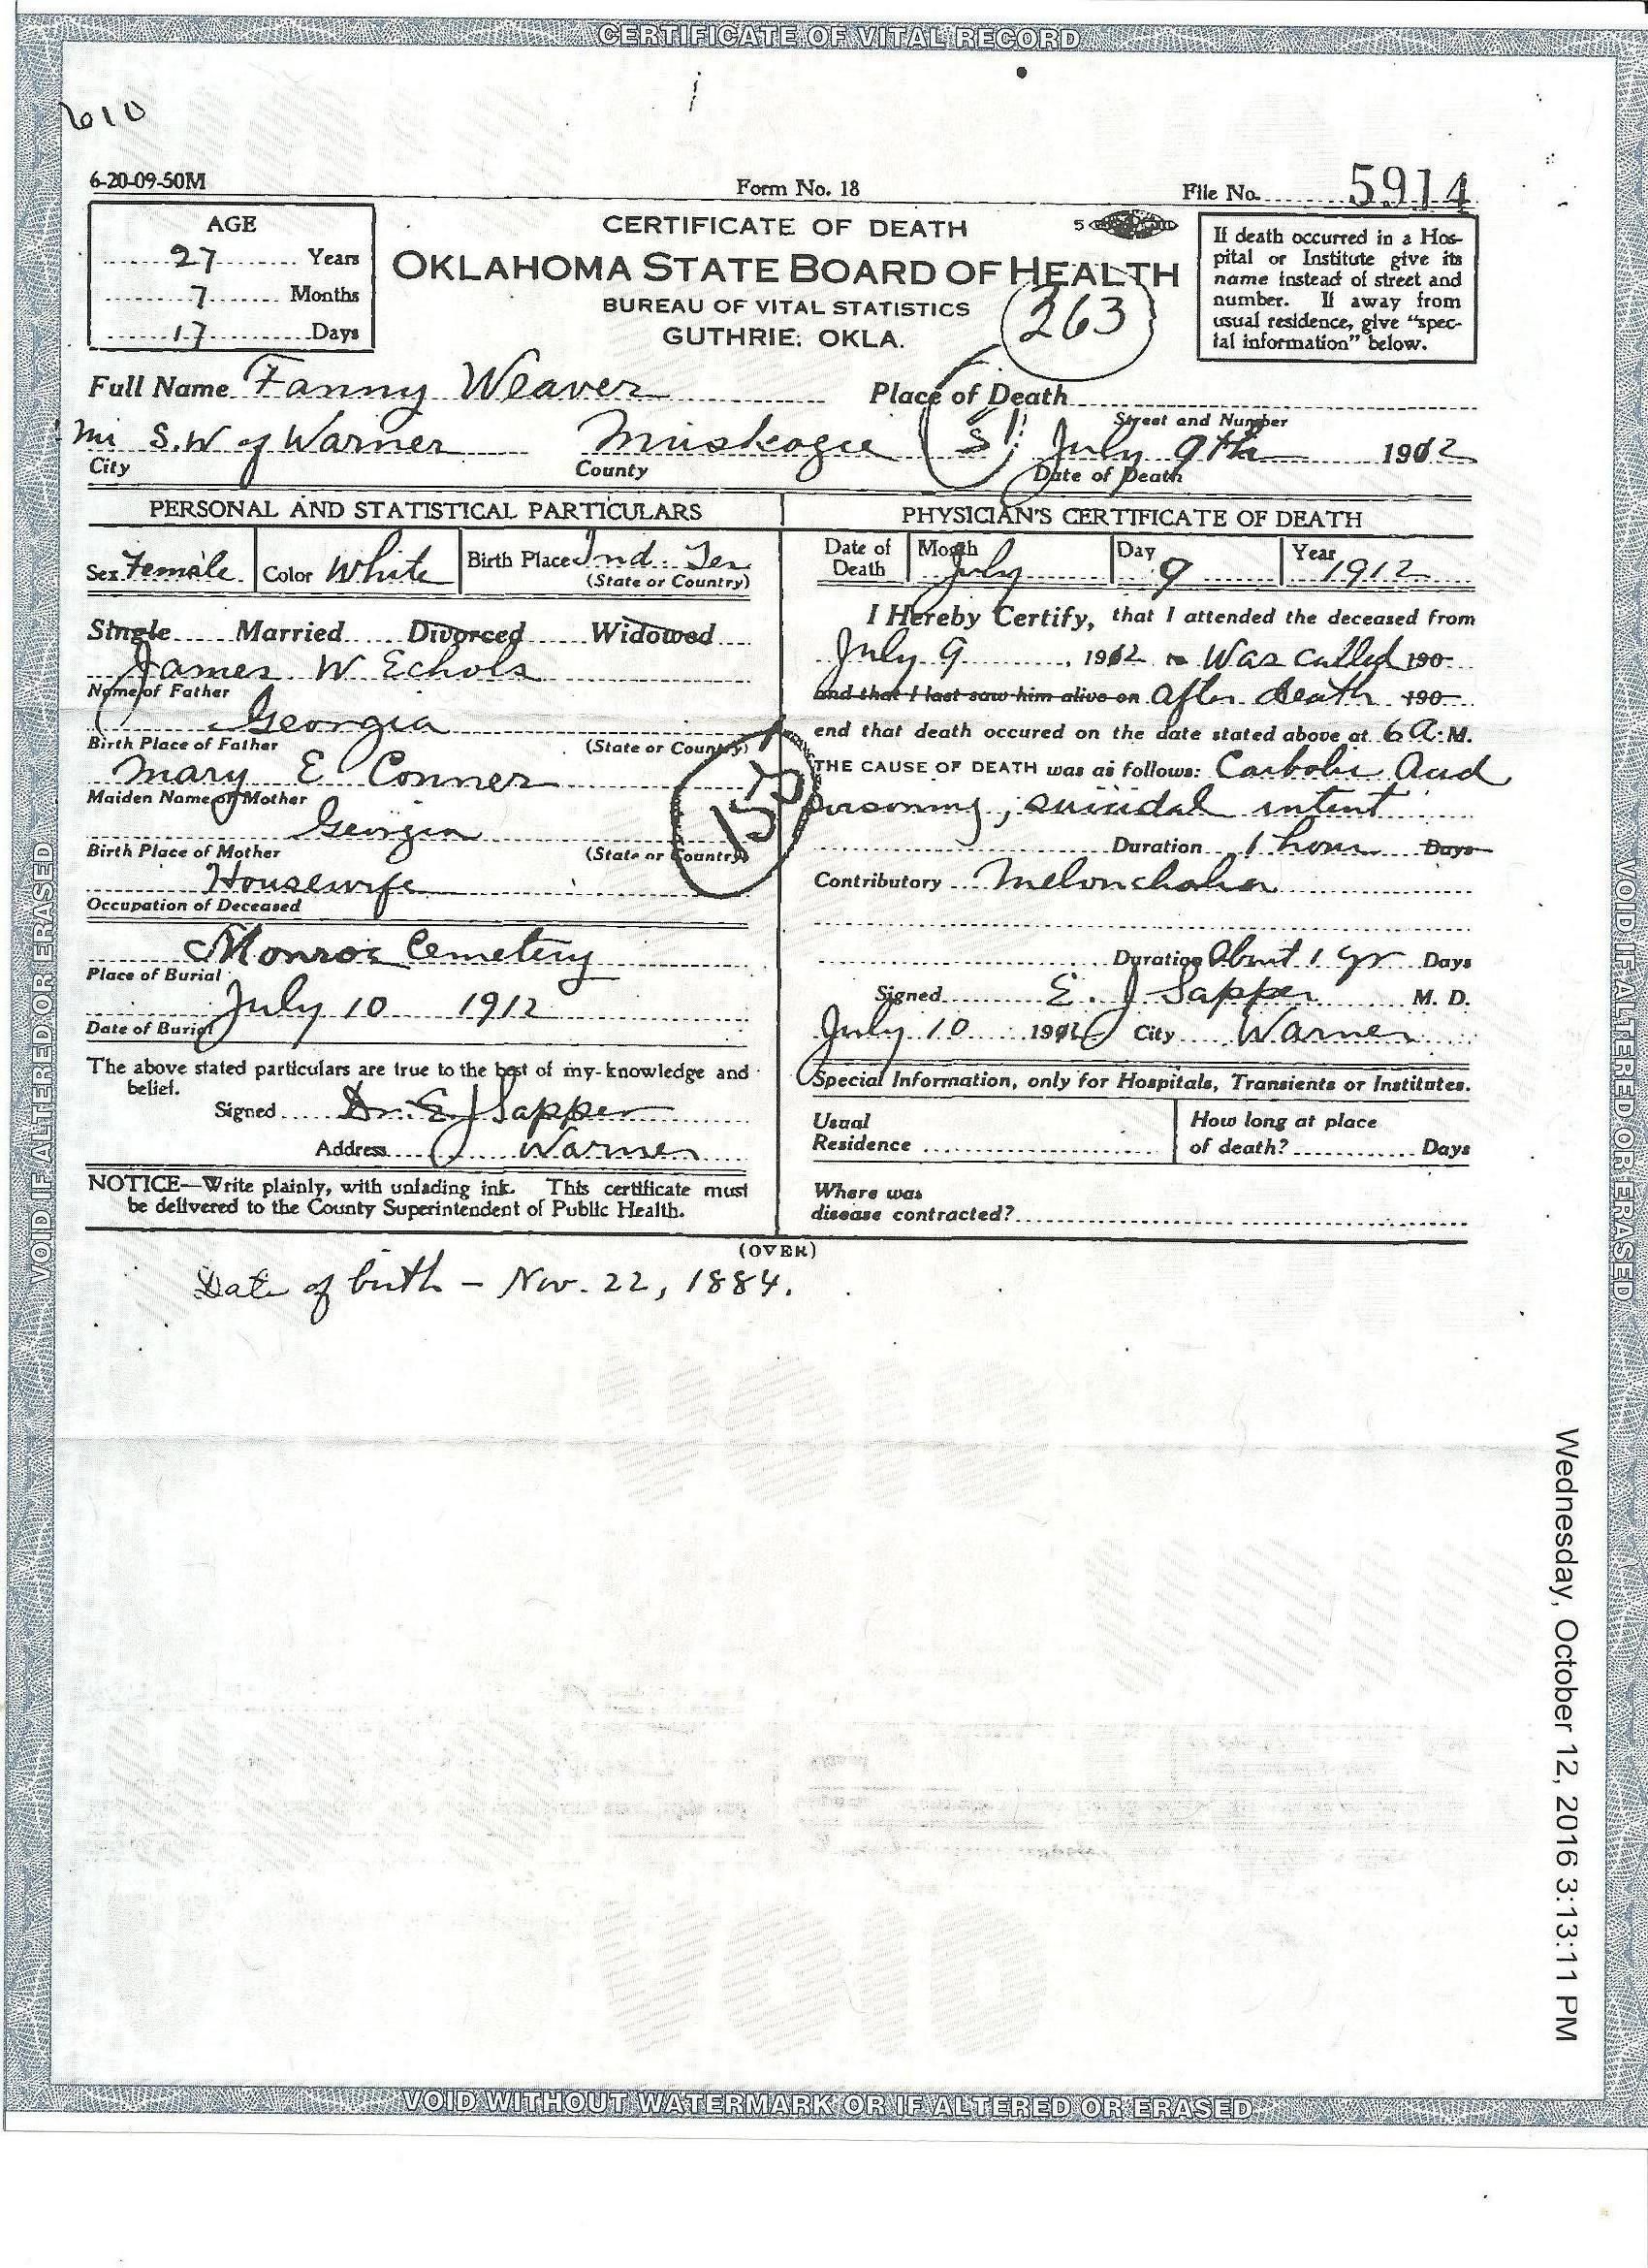 Fannie echols weaver 1884 1912 find a grave memorial death certificate showing parents names and birth date as well as cause of death 1betcityfo Images